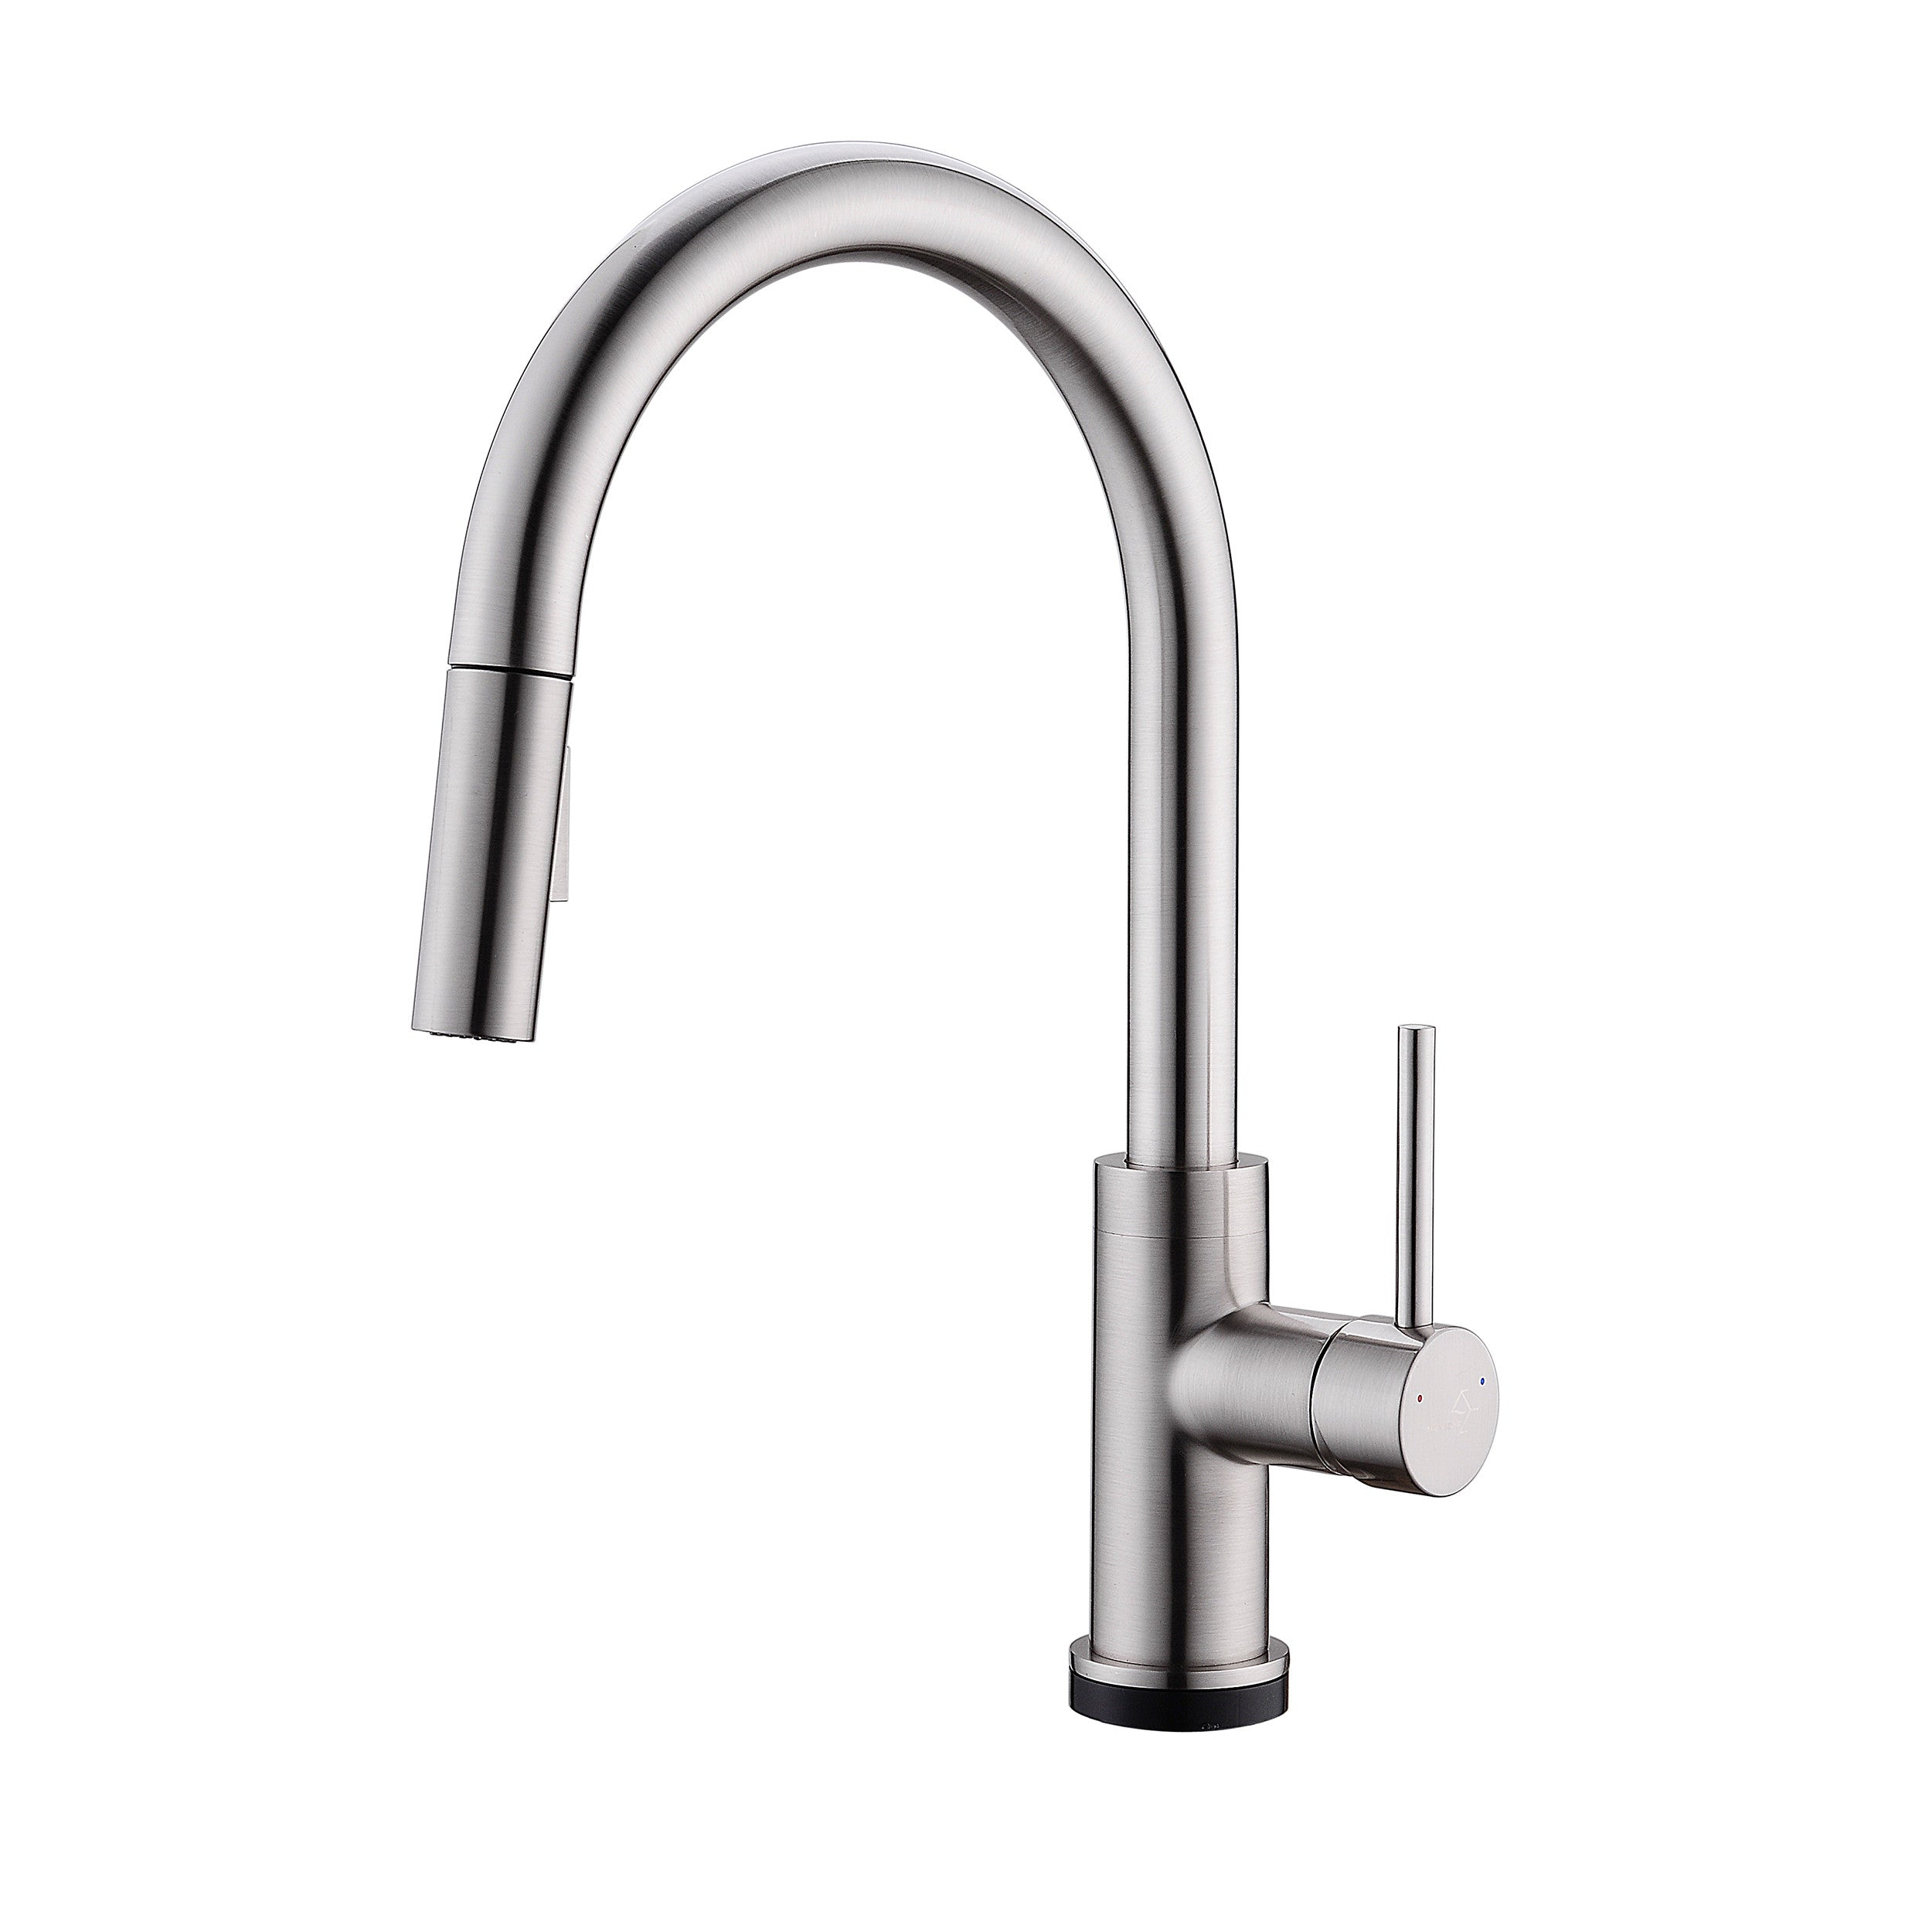 Merveilleux BAI 0651 Single Handle Kitchen Faucet With Pull Down Spray / Touch To ON OFF  / Brushed Finish